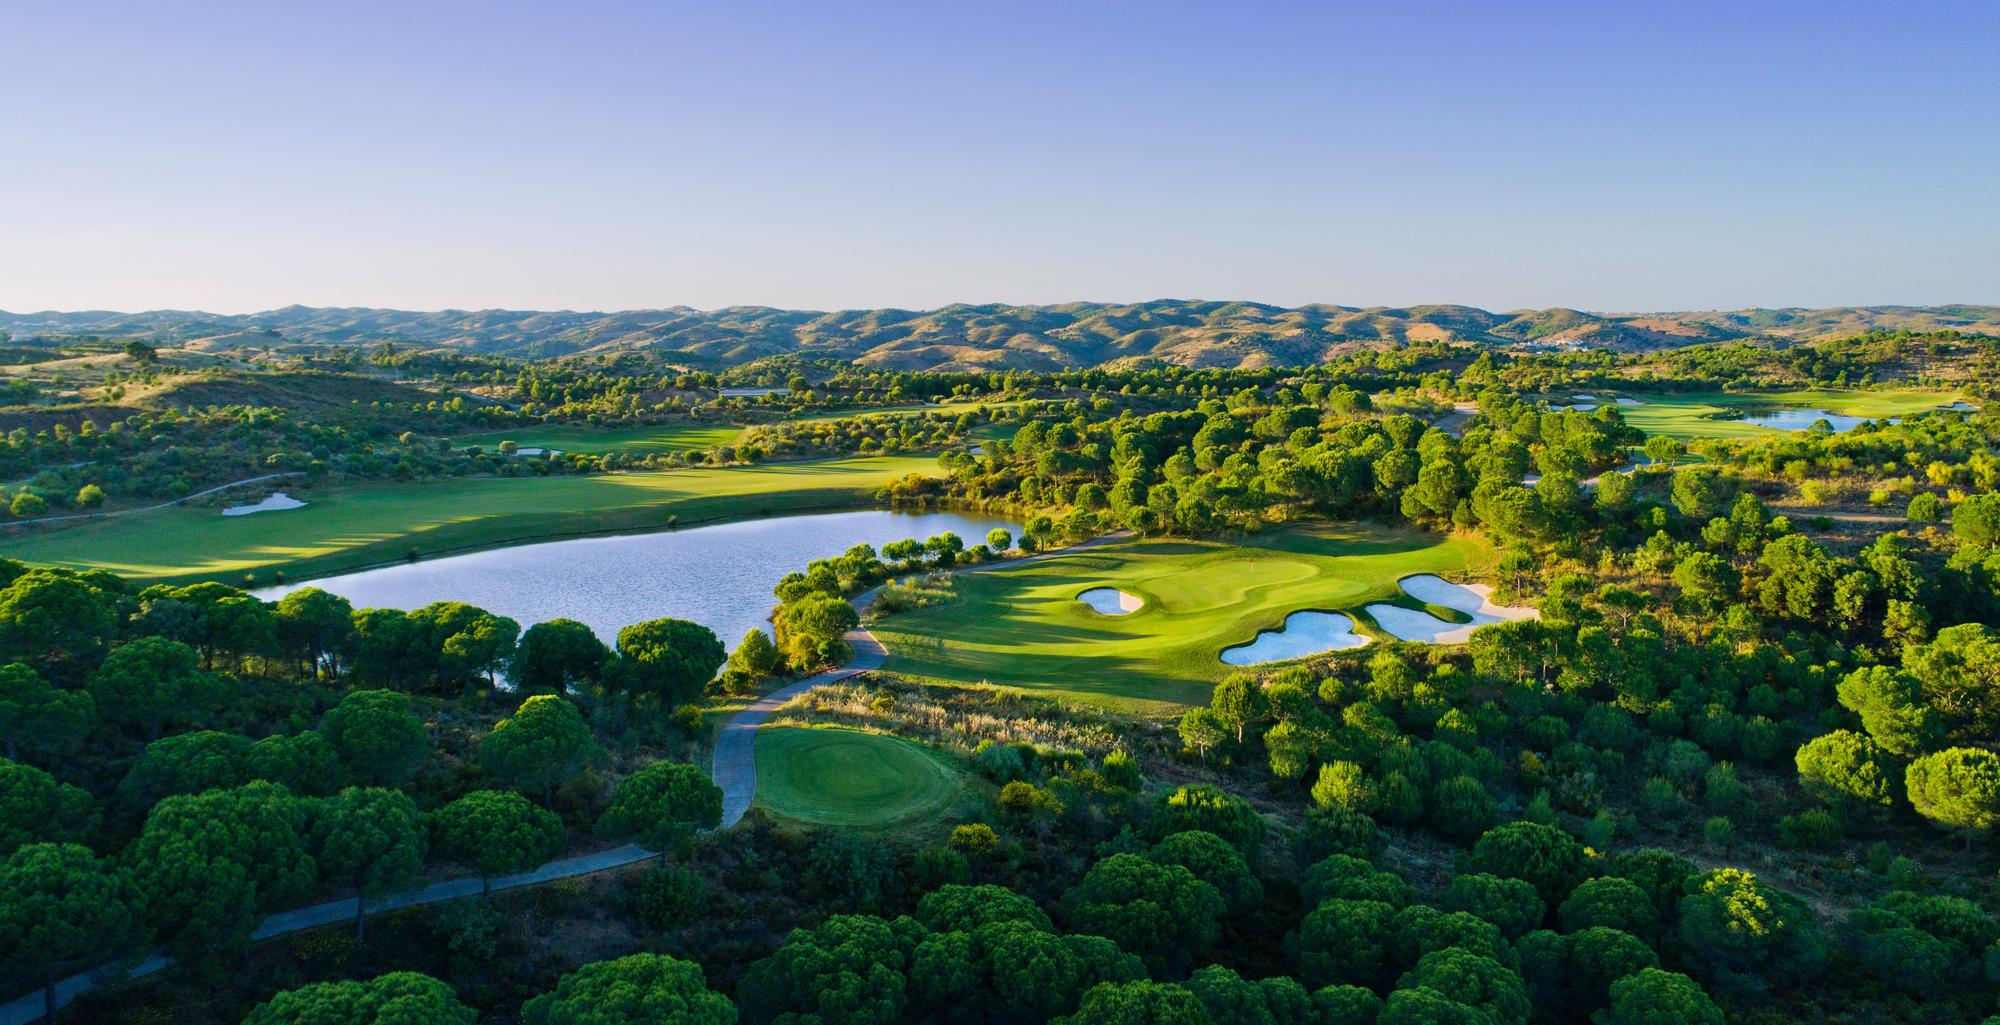 The Monte Rei Golf  Country Club's picturesque golf course in stunning Algarve.